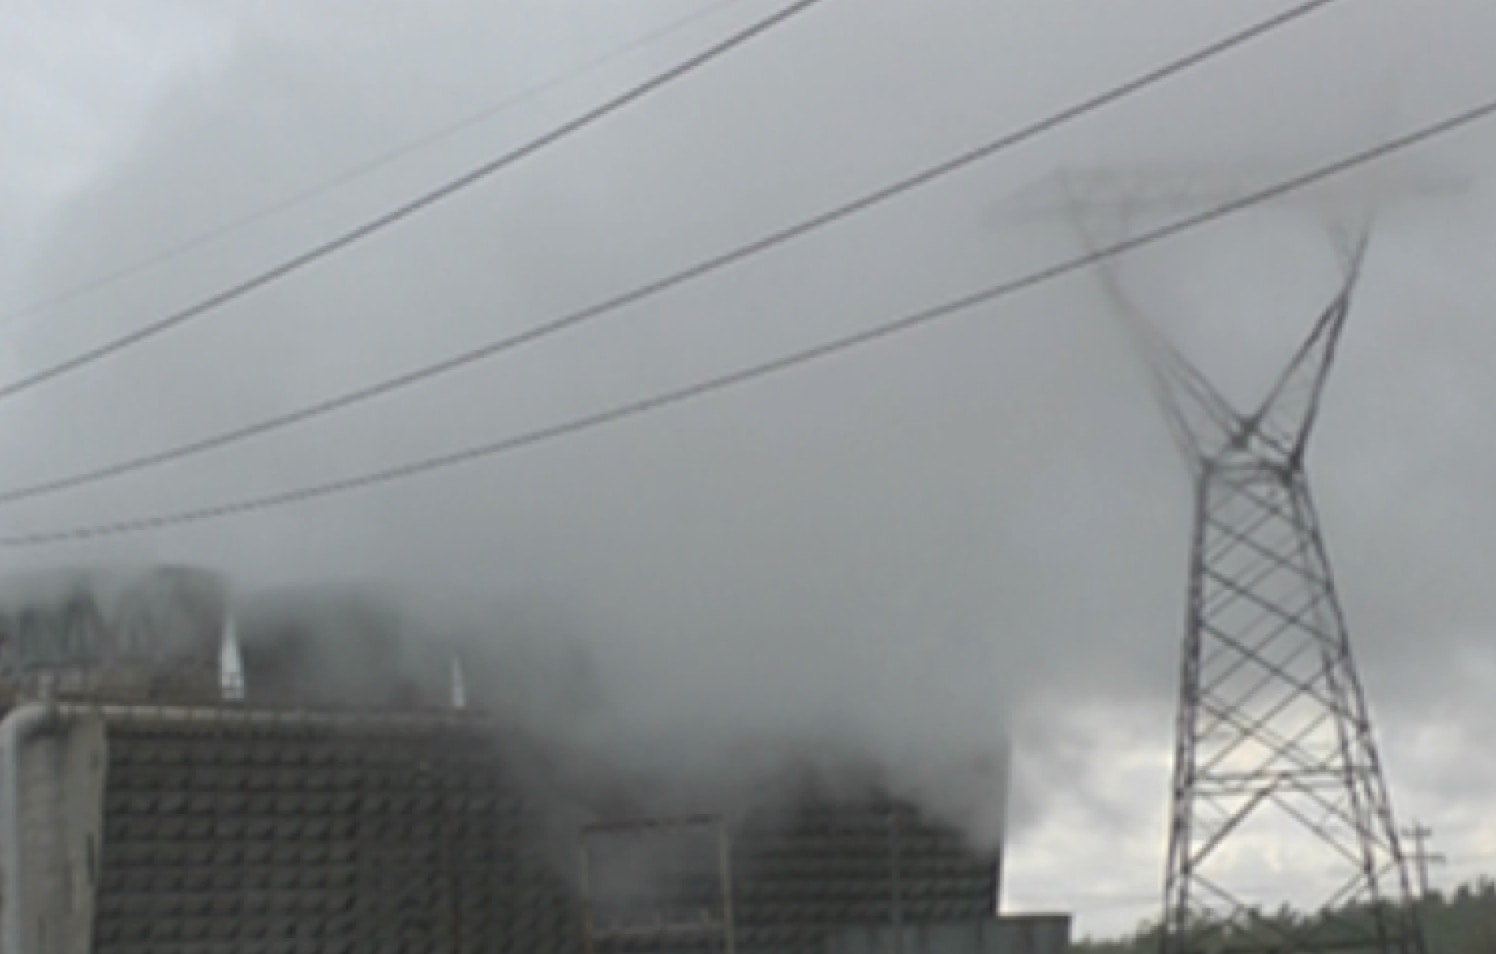 Transmission tower surrounded by vapor